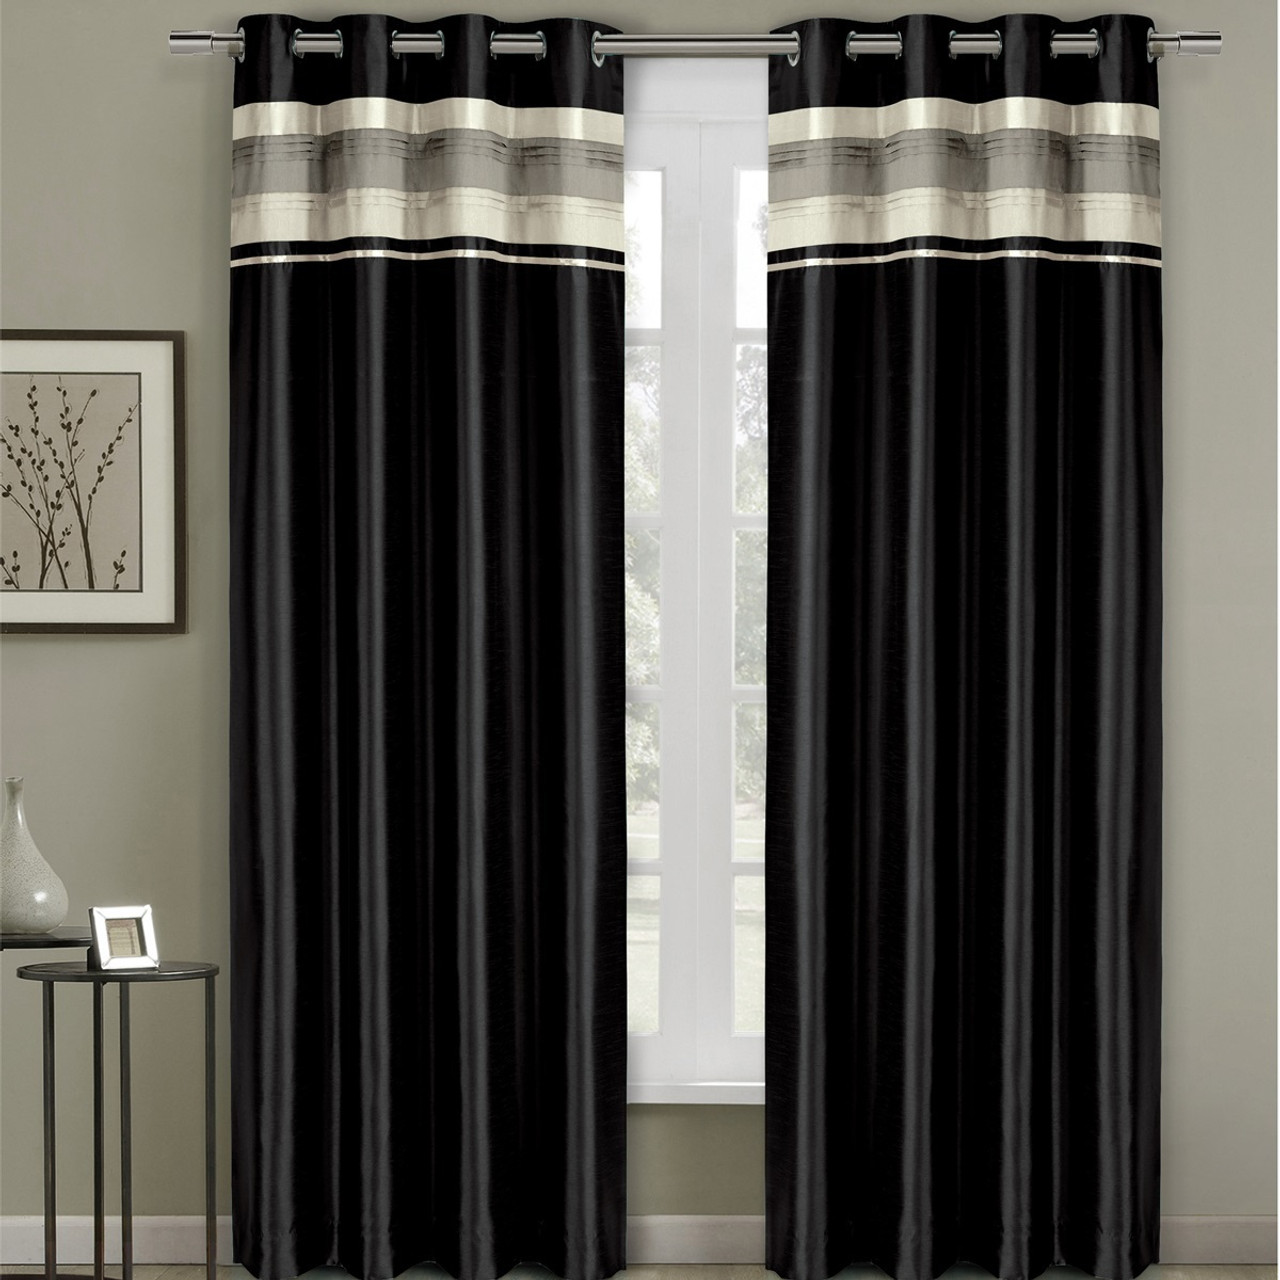 Black Curtains Part - 45: ... Milan Lined Blackout Curtains With Grommets Single Panel- Black ...